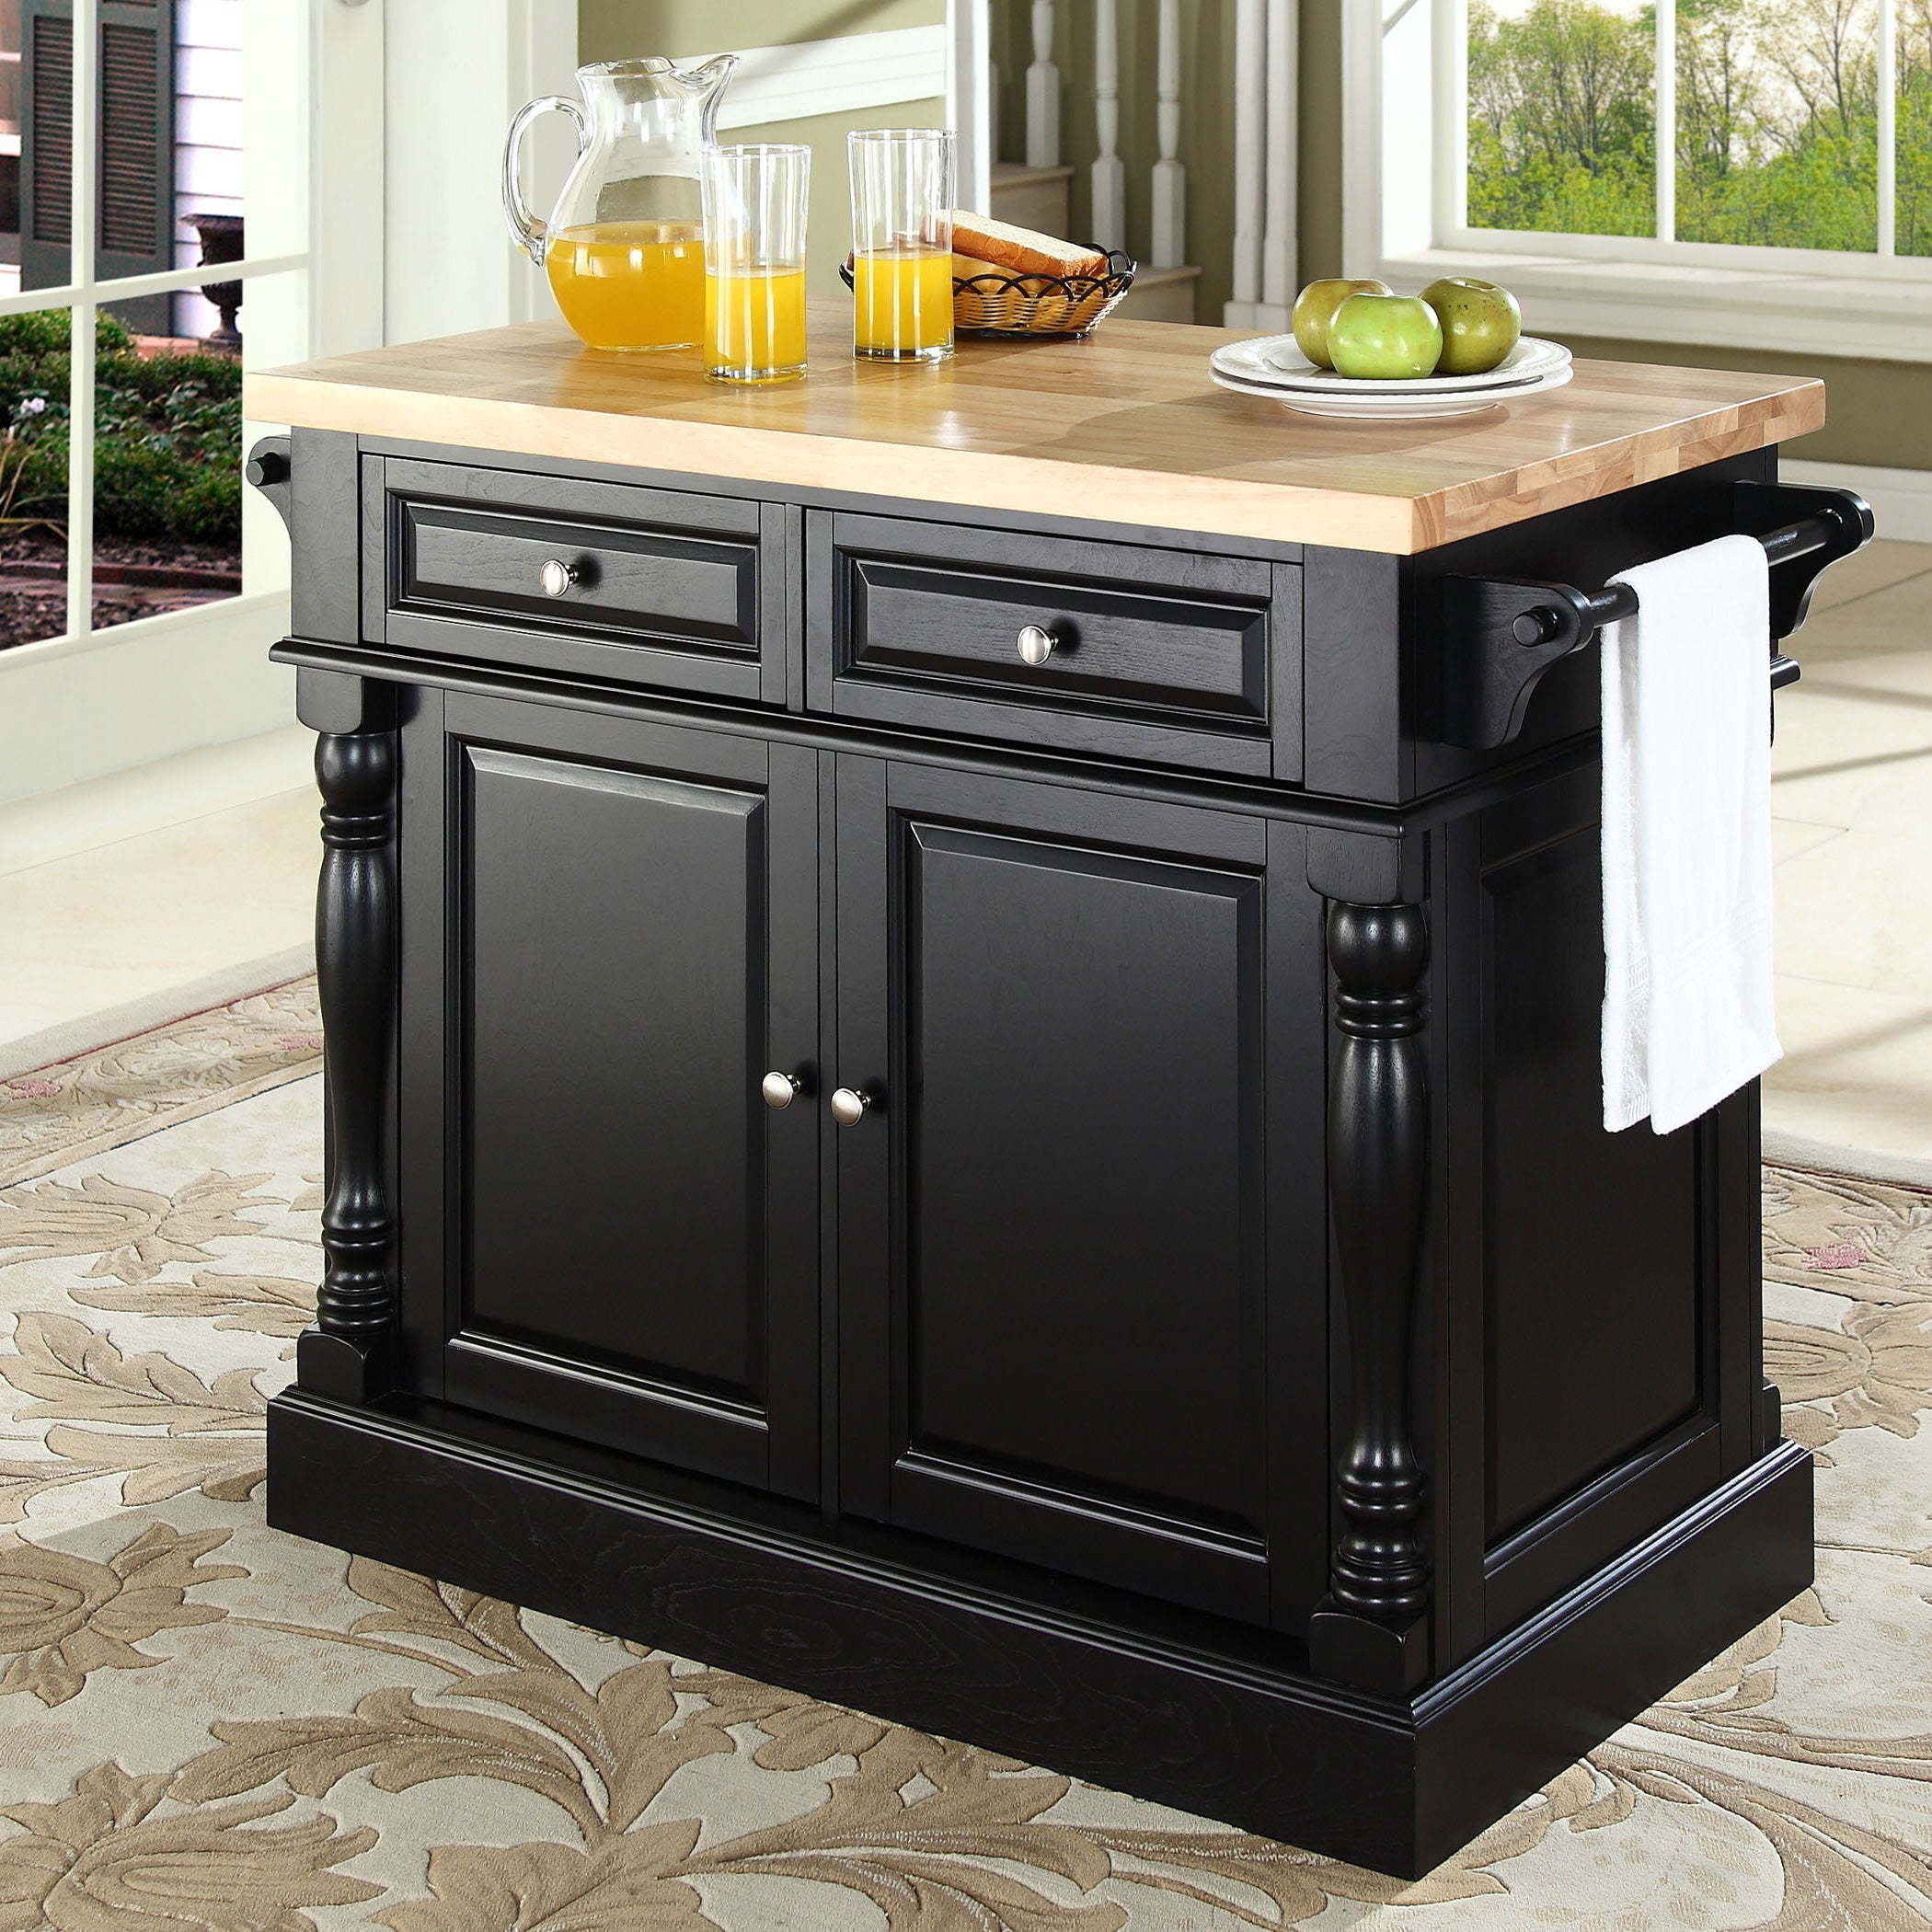 Kitchen Island With Butcher Block Top: Oxford Butcher Block Top Kitchen Island In Black Finish